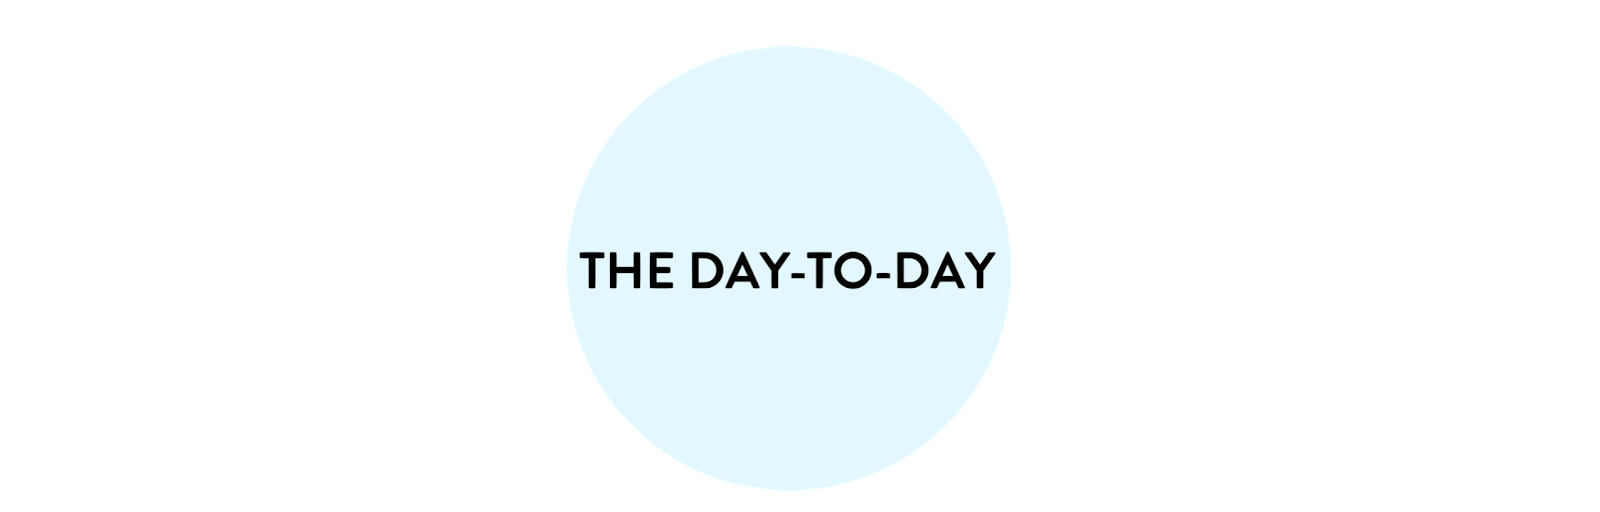 THE DAY-TO-DAY